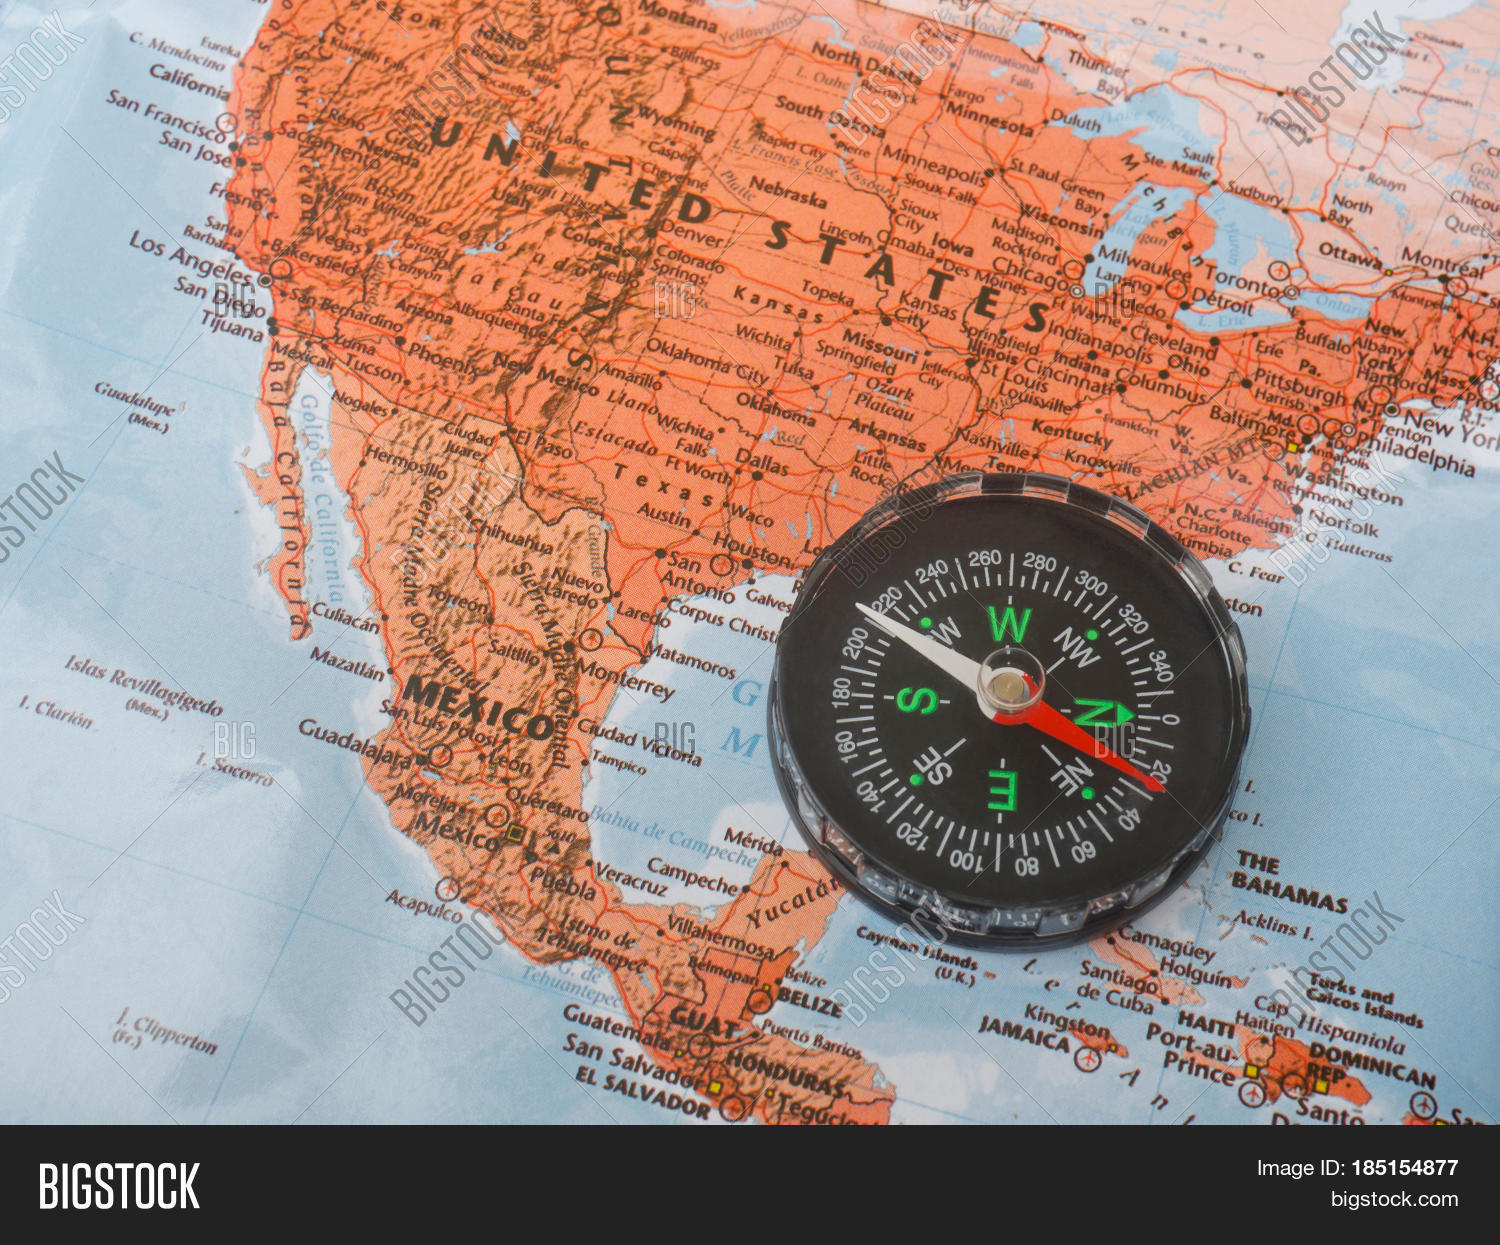 Compass On Map : Image & Photo (Free Trial) | Bigstock